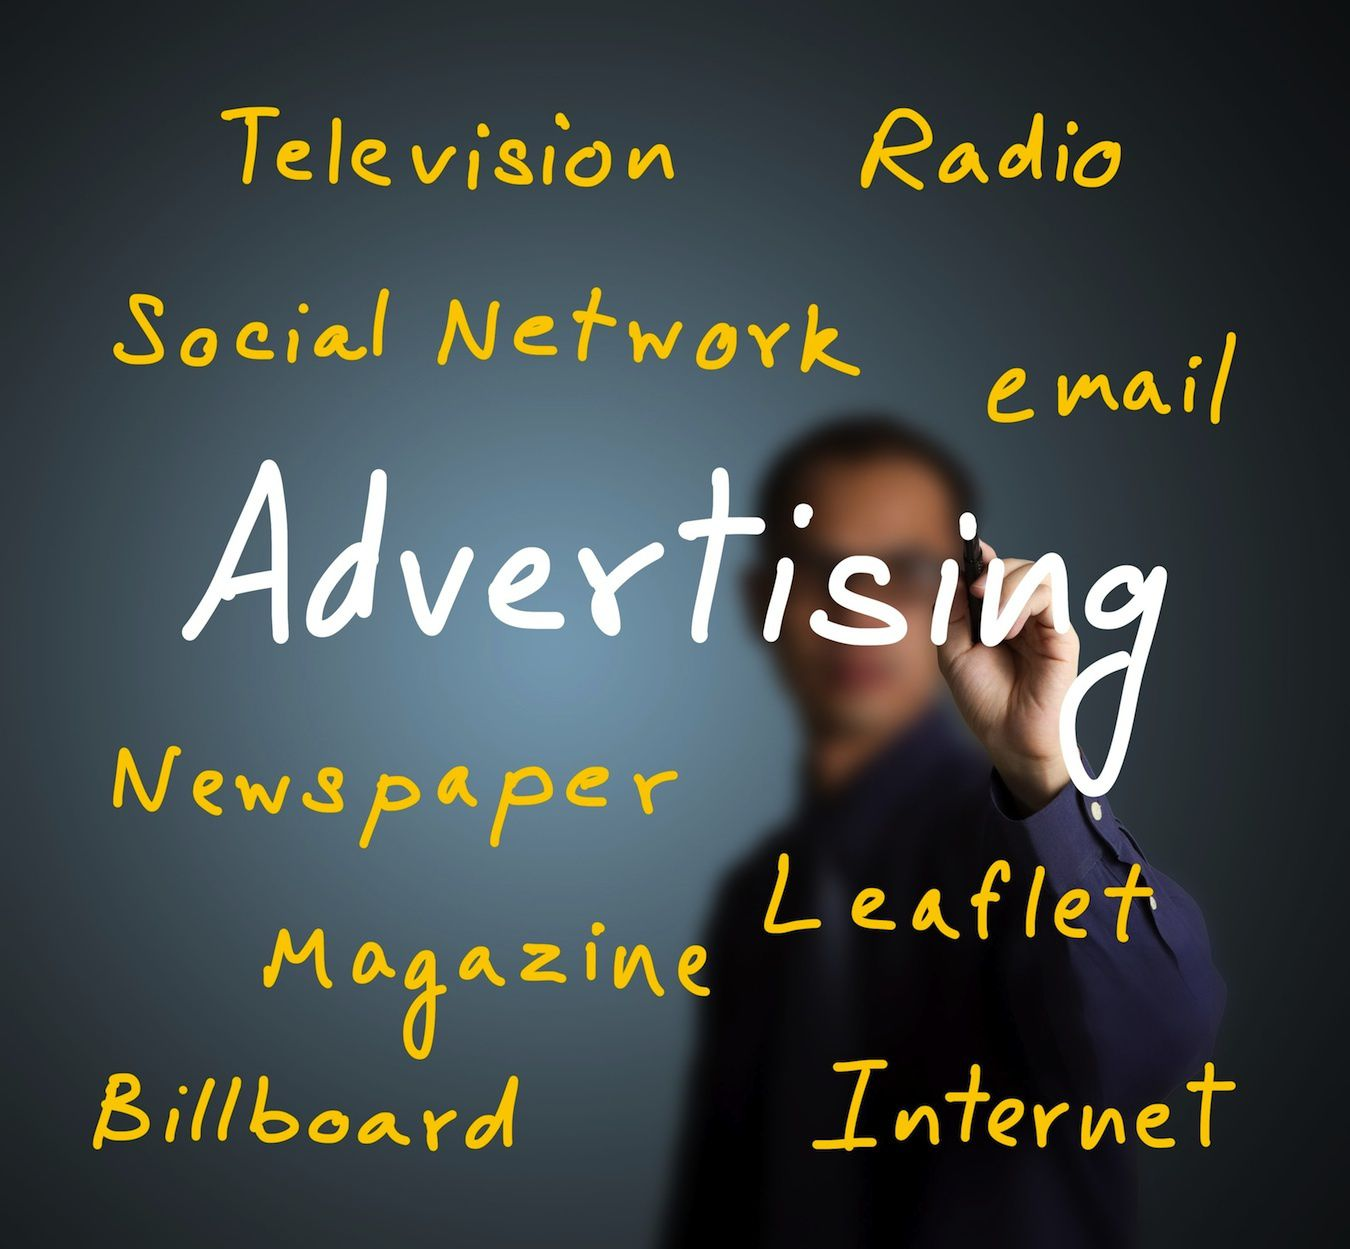 power of advertising Use these power words in your online advertising to inspire viewers to take action.